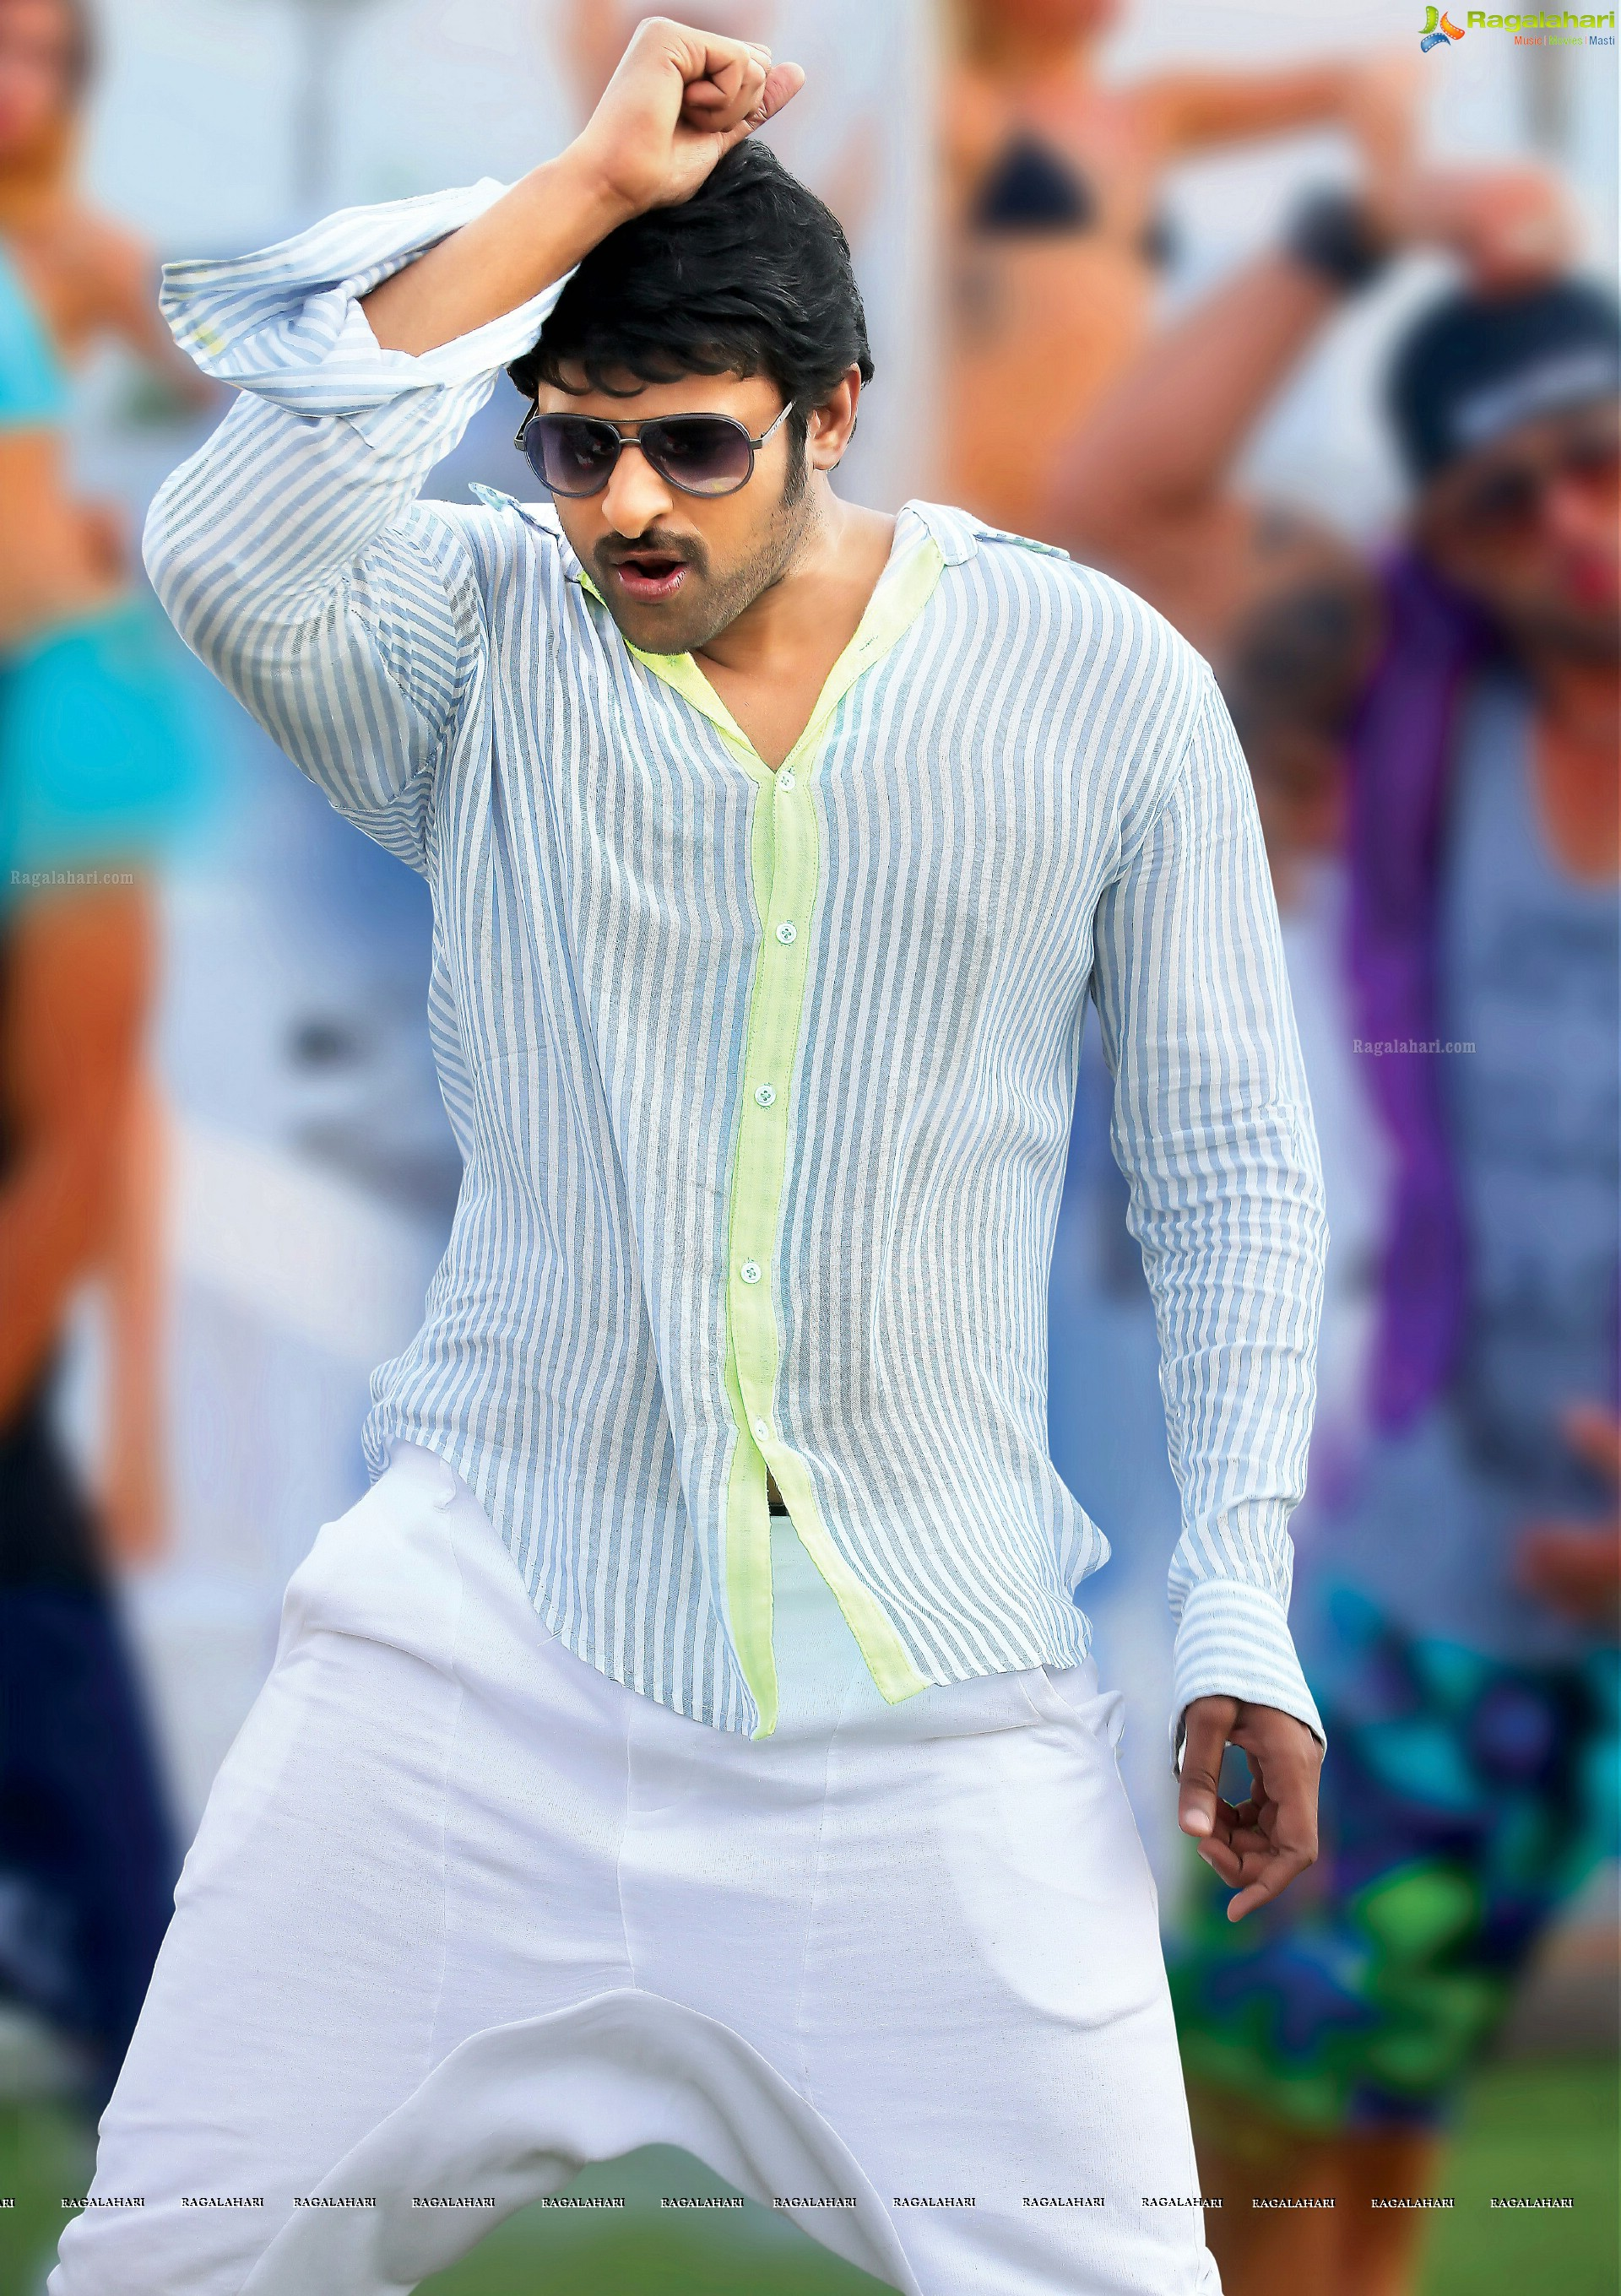 Prabhas Hd Image 3 Telugu Actress Galleryimages Pics Pictures